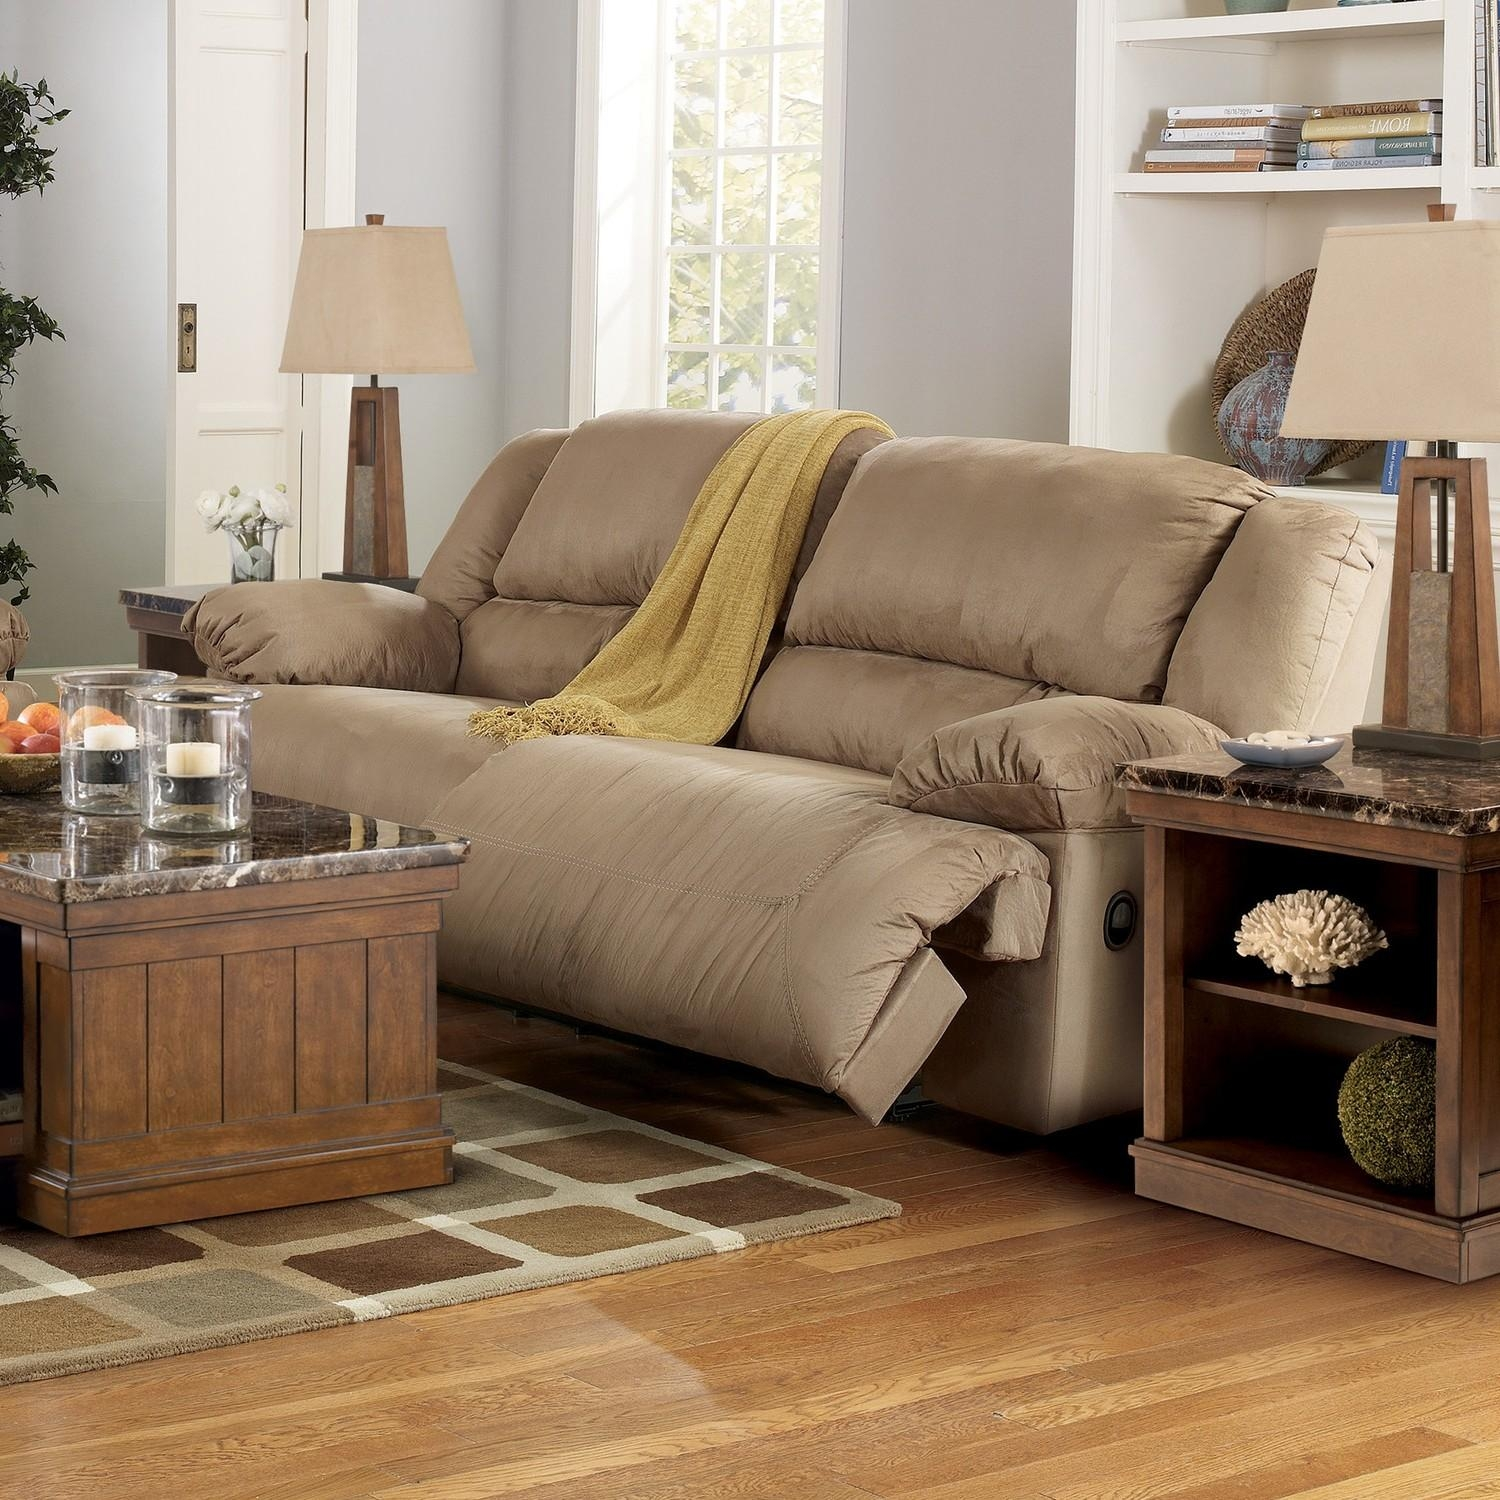 Sofas: Oversized Sofas That Are Ready For Hours Of Lounging Time For Overstuffed Sofas And Chairs (Image 20 of 20)